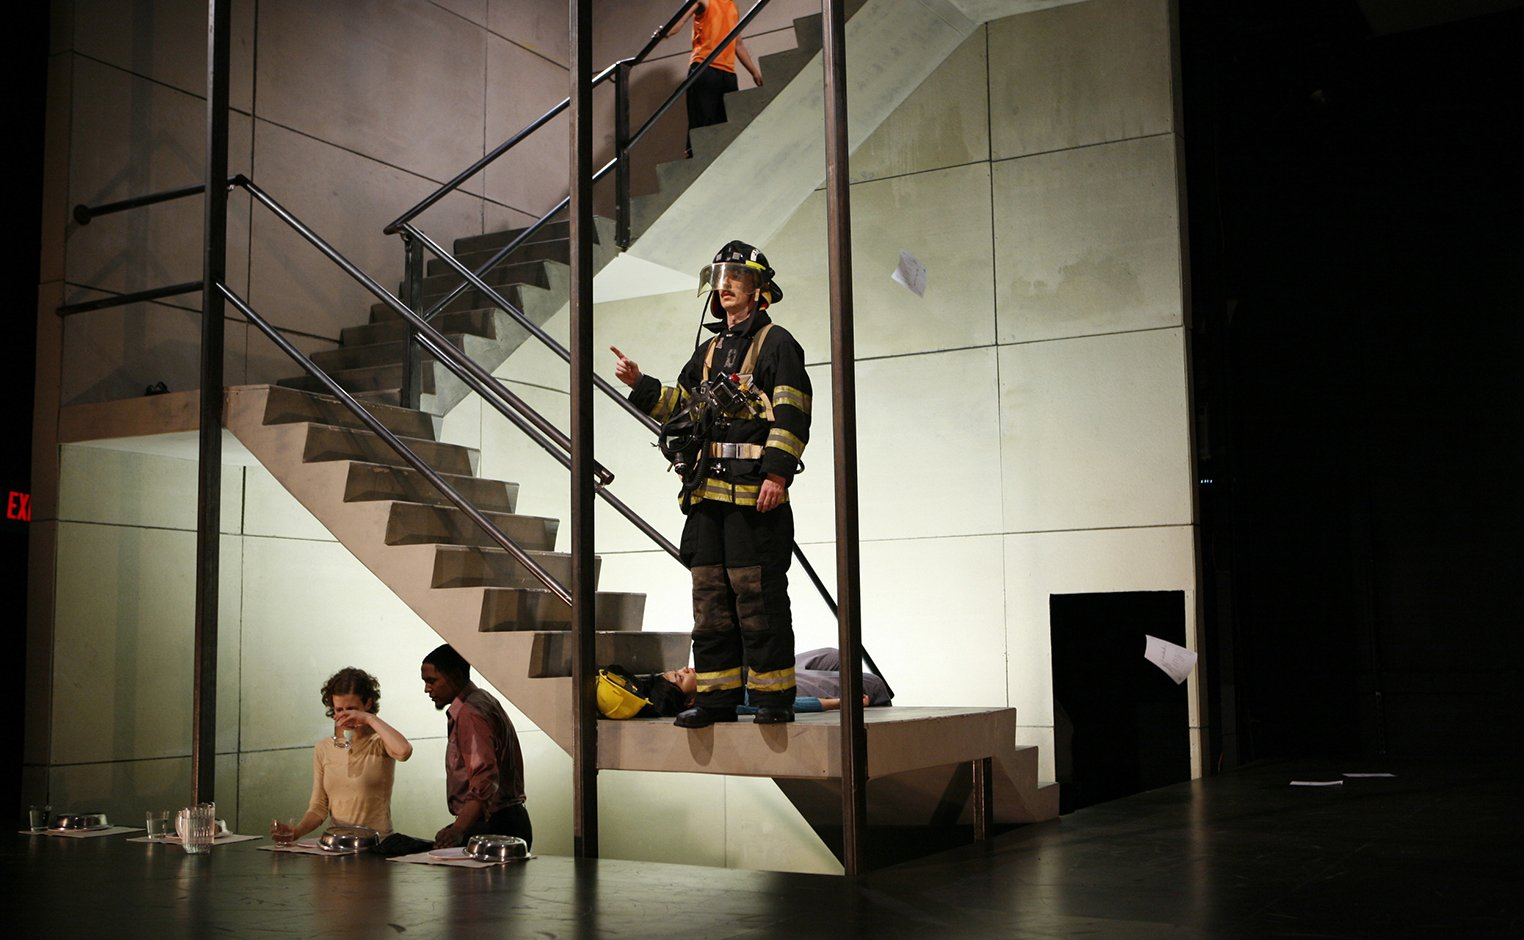 Person dressed as firefighter stands in stairwell